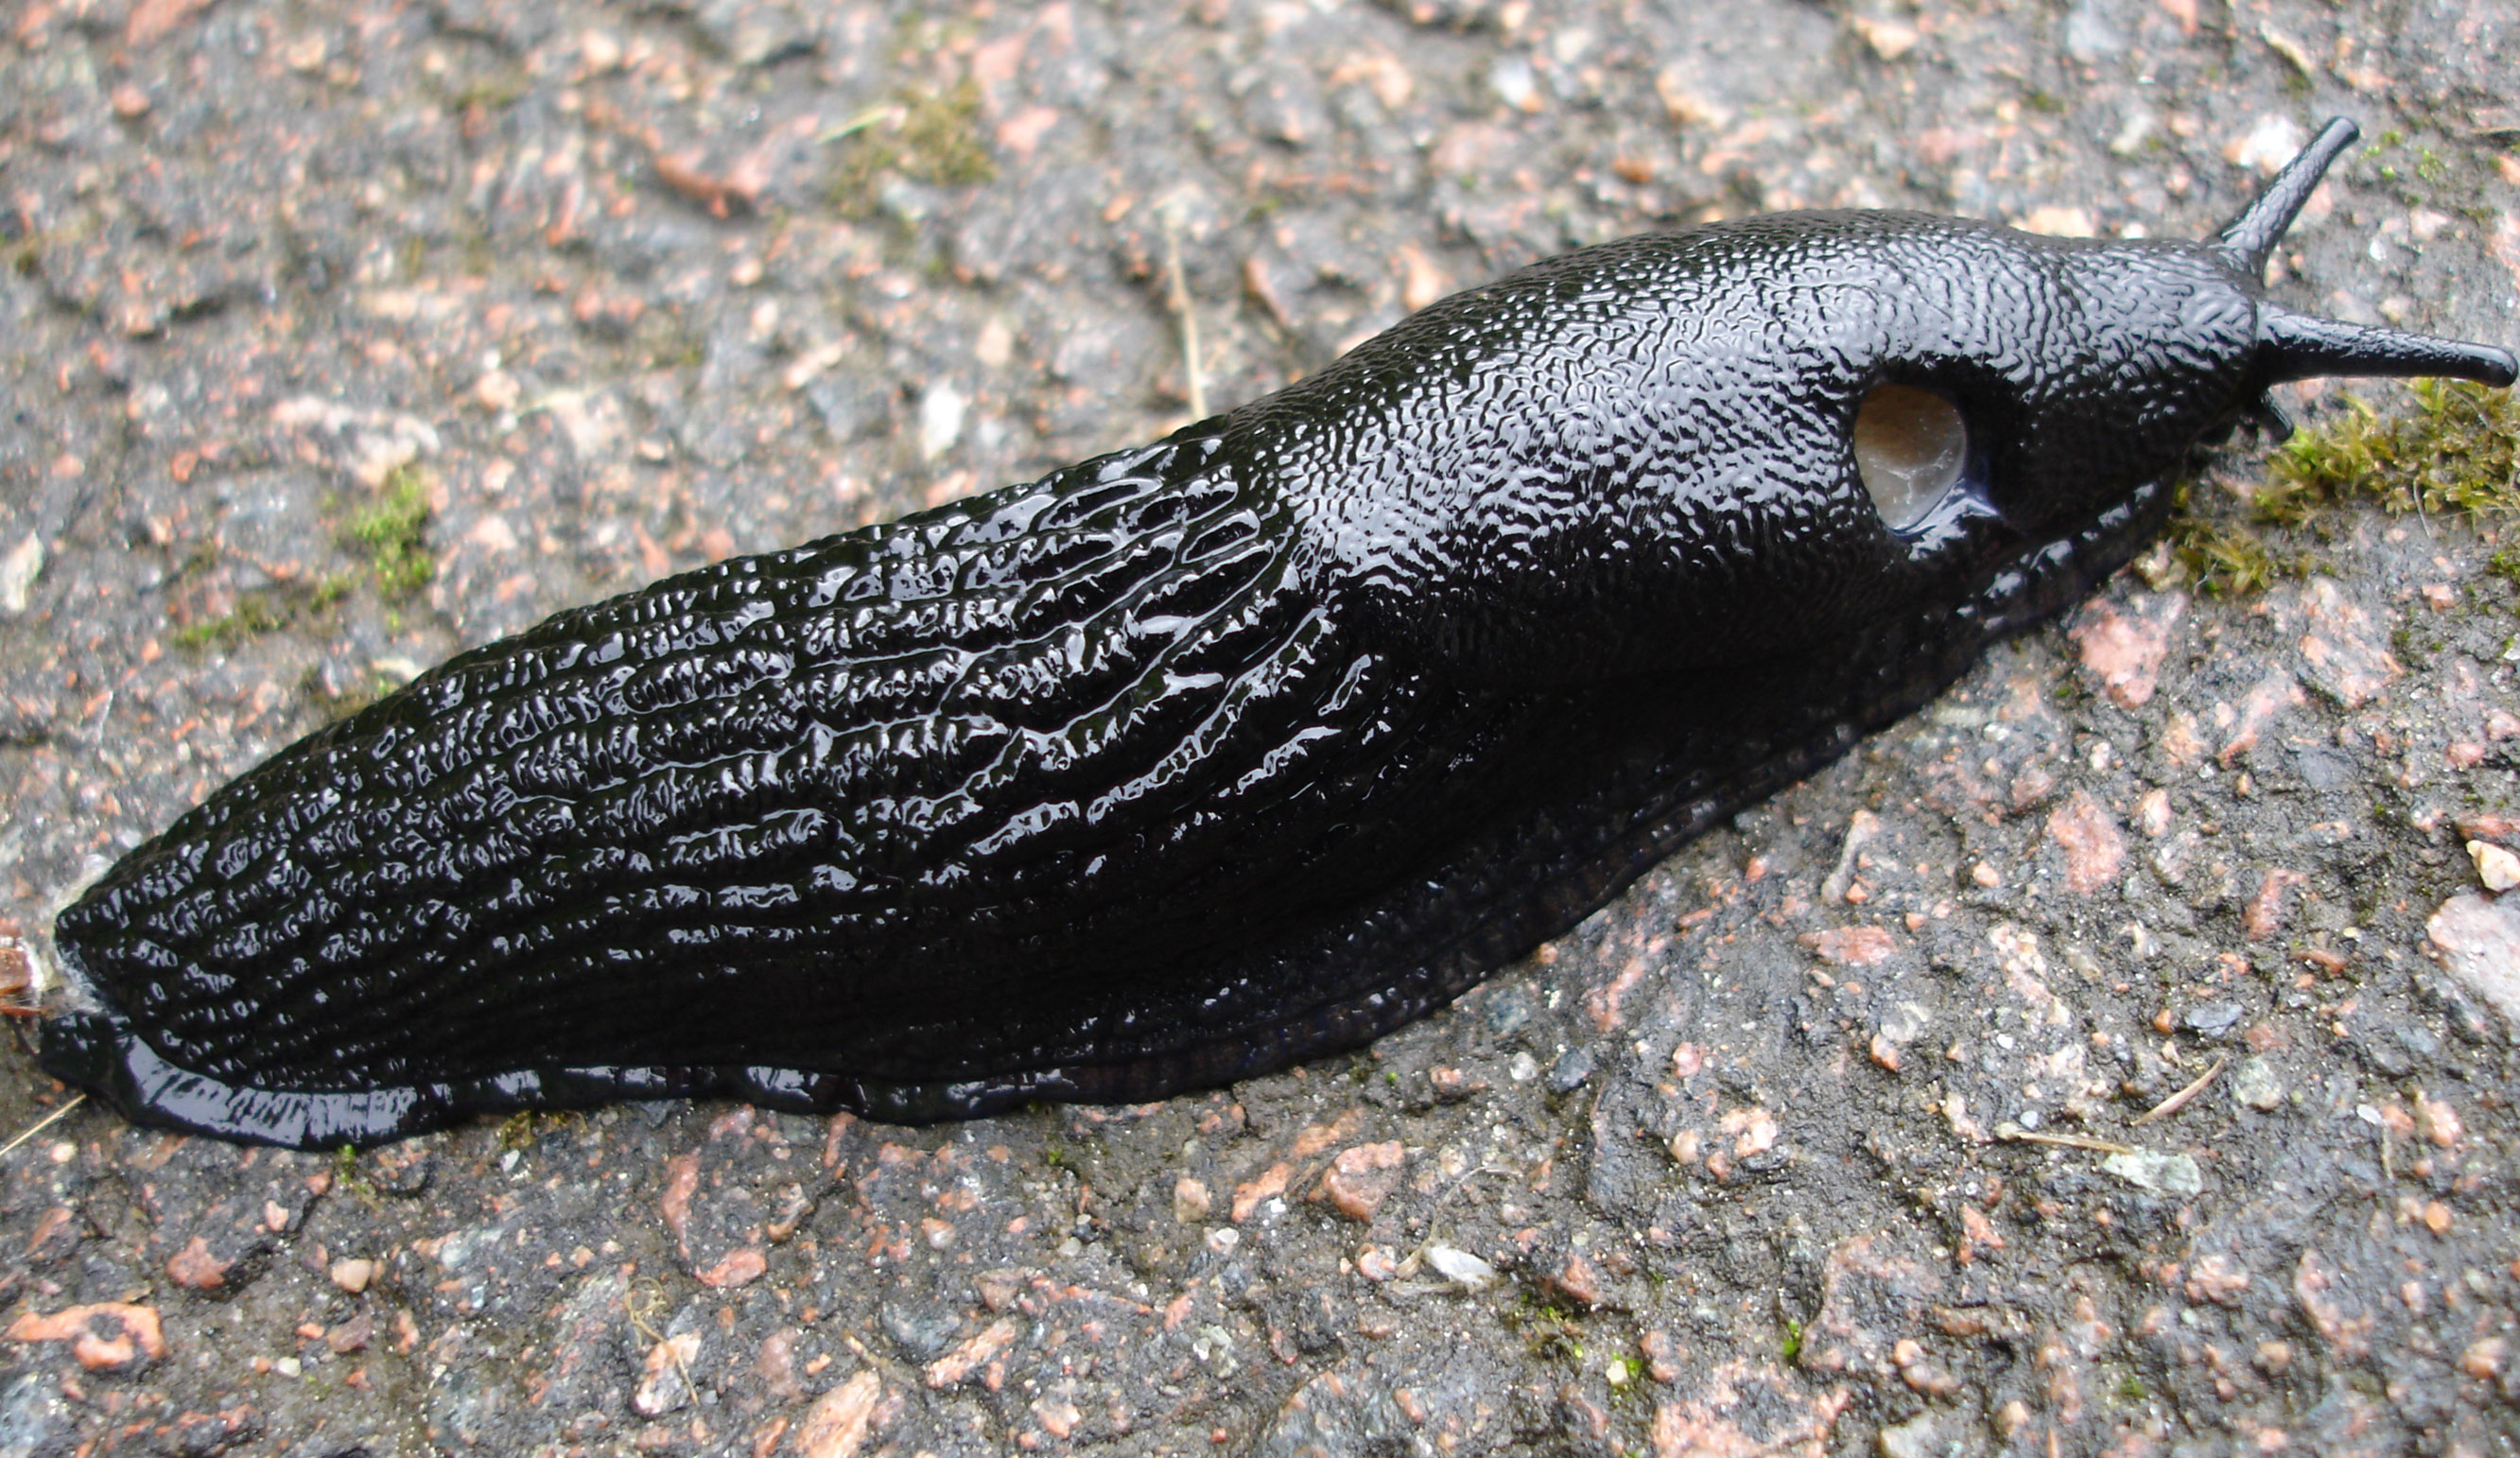 Slug_crop-aspect.jpg